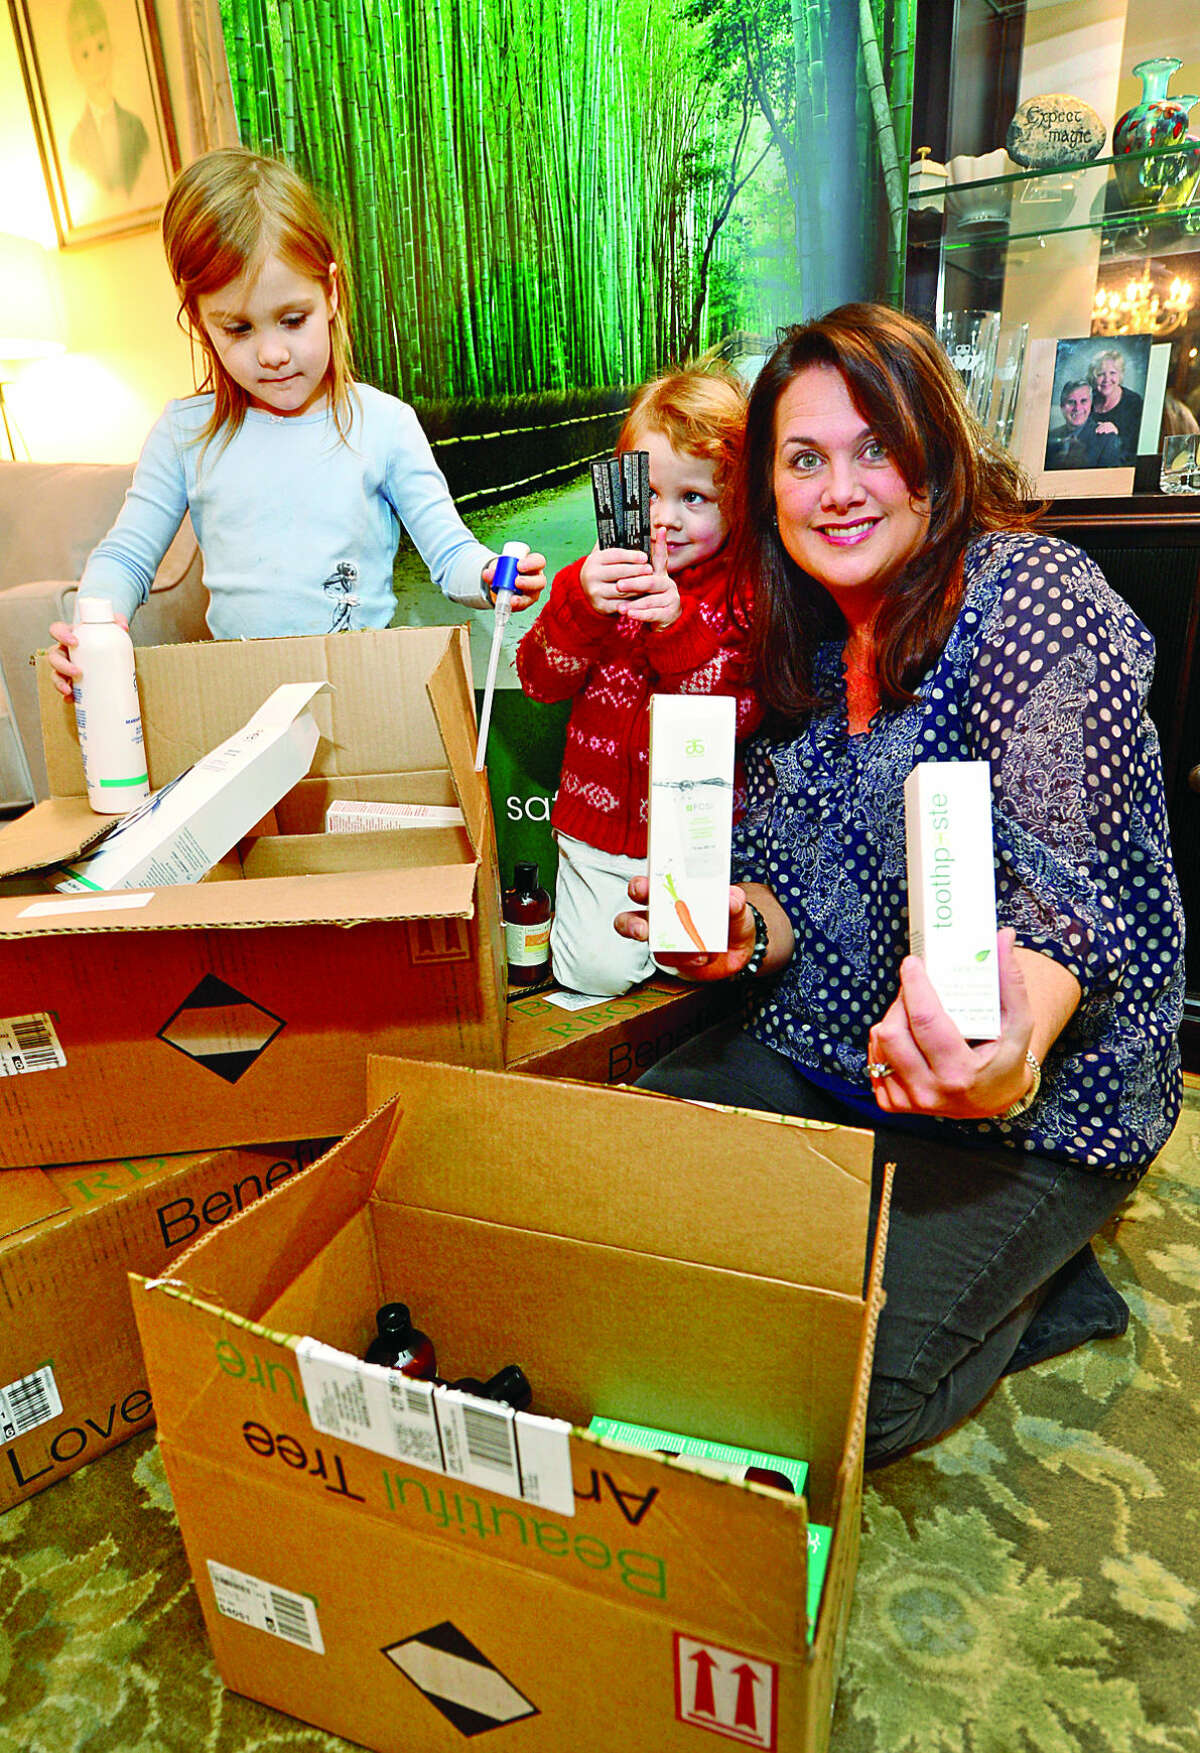 Hour photo / Erik Trautmann Weston resident Kristin Kreuder, an Arbonne Independent Consultant, and her daughters, Katherine, 4, and Victoria, 3, pack up boxes of Arbonne beauty and skincare products to be donated to Malta House in Norwalk for Christmas.